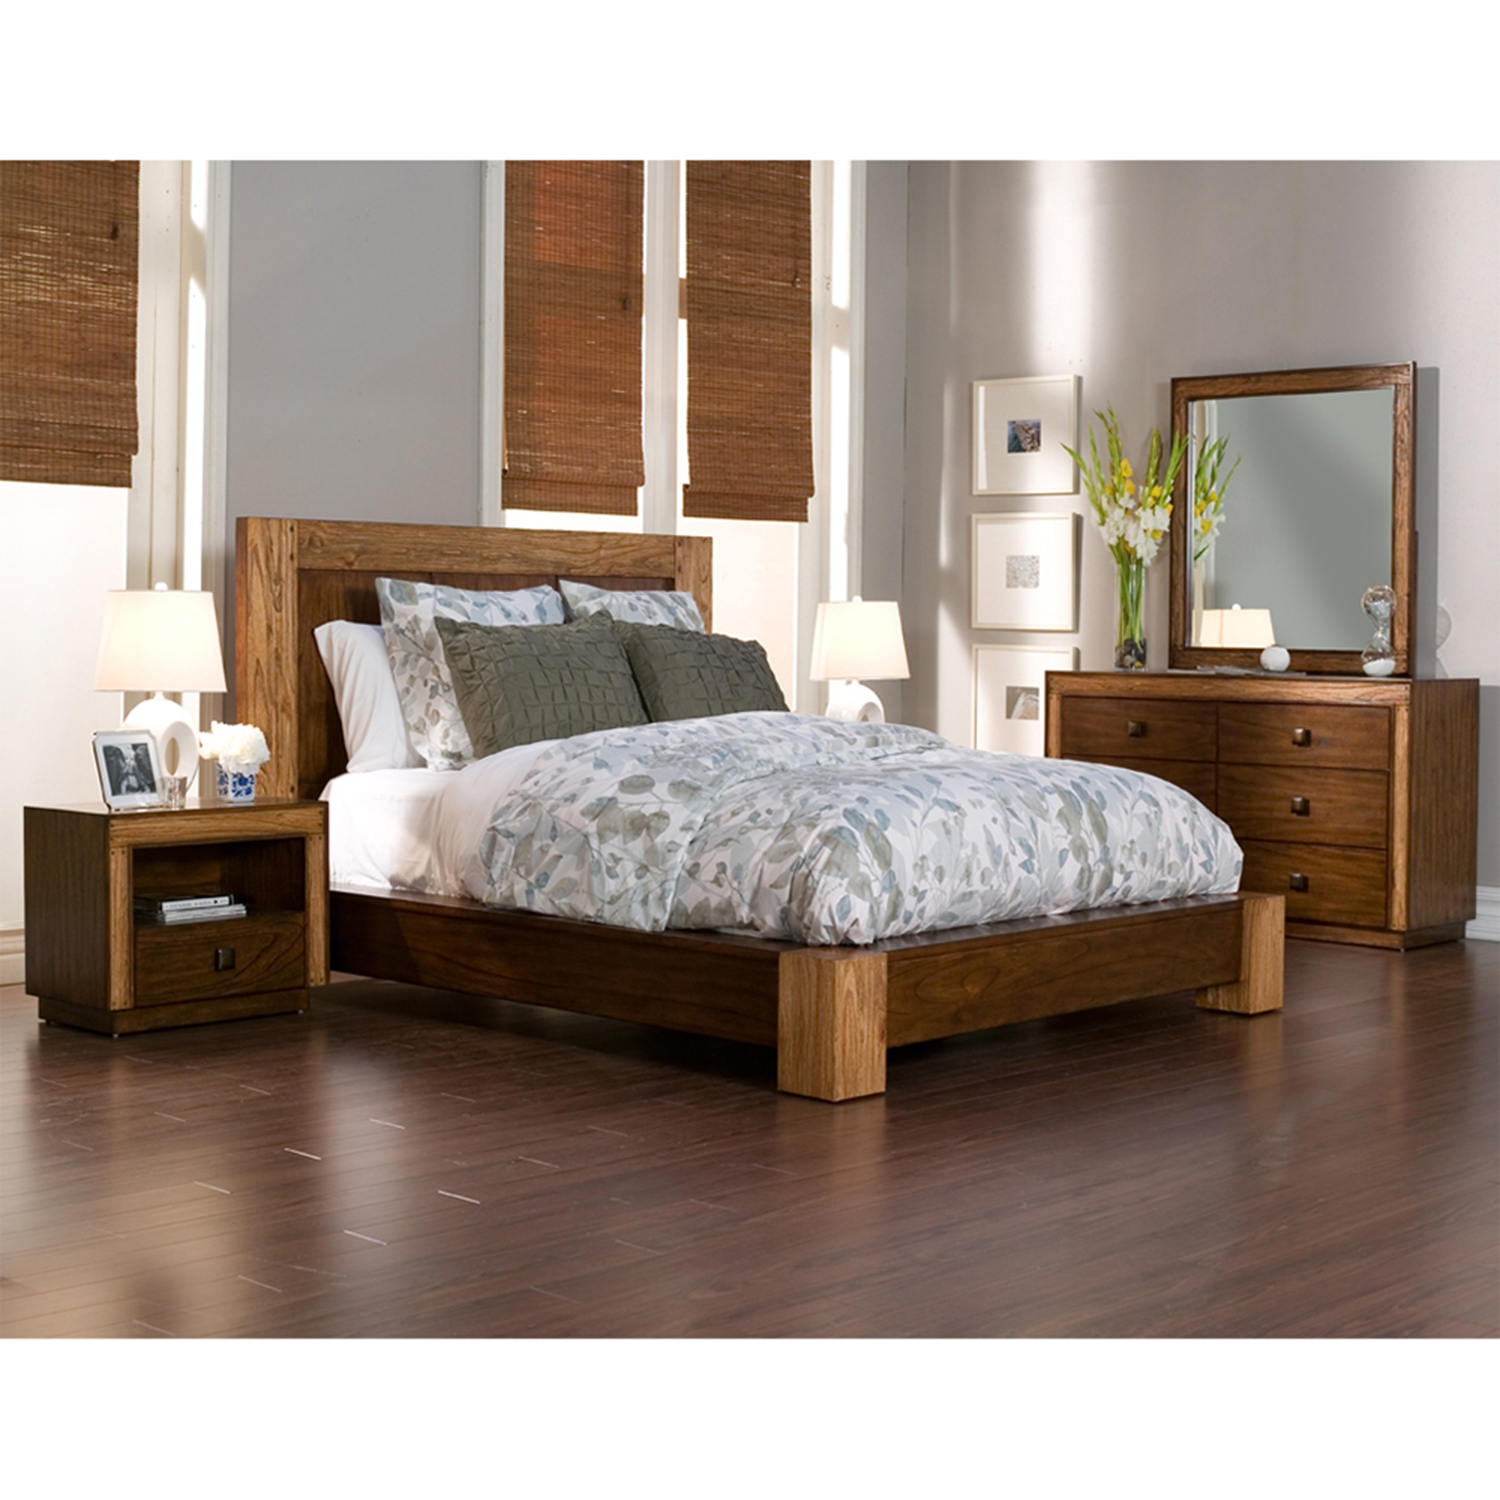 Jimbaran Bay Bedroom Set - Tobacco